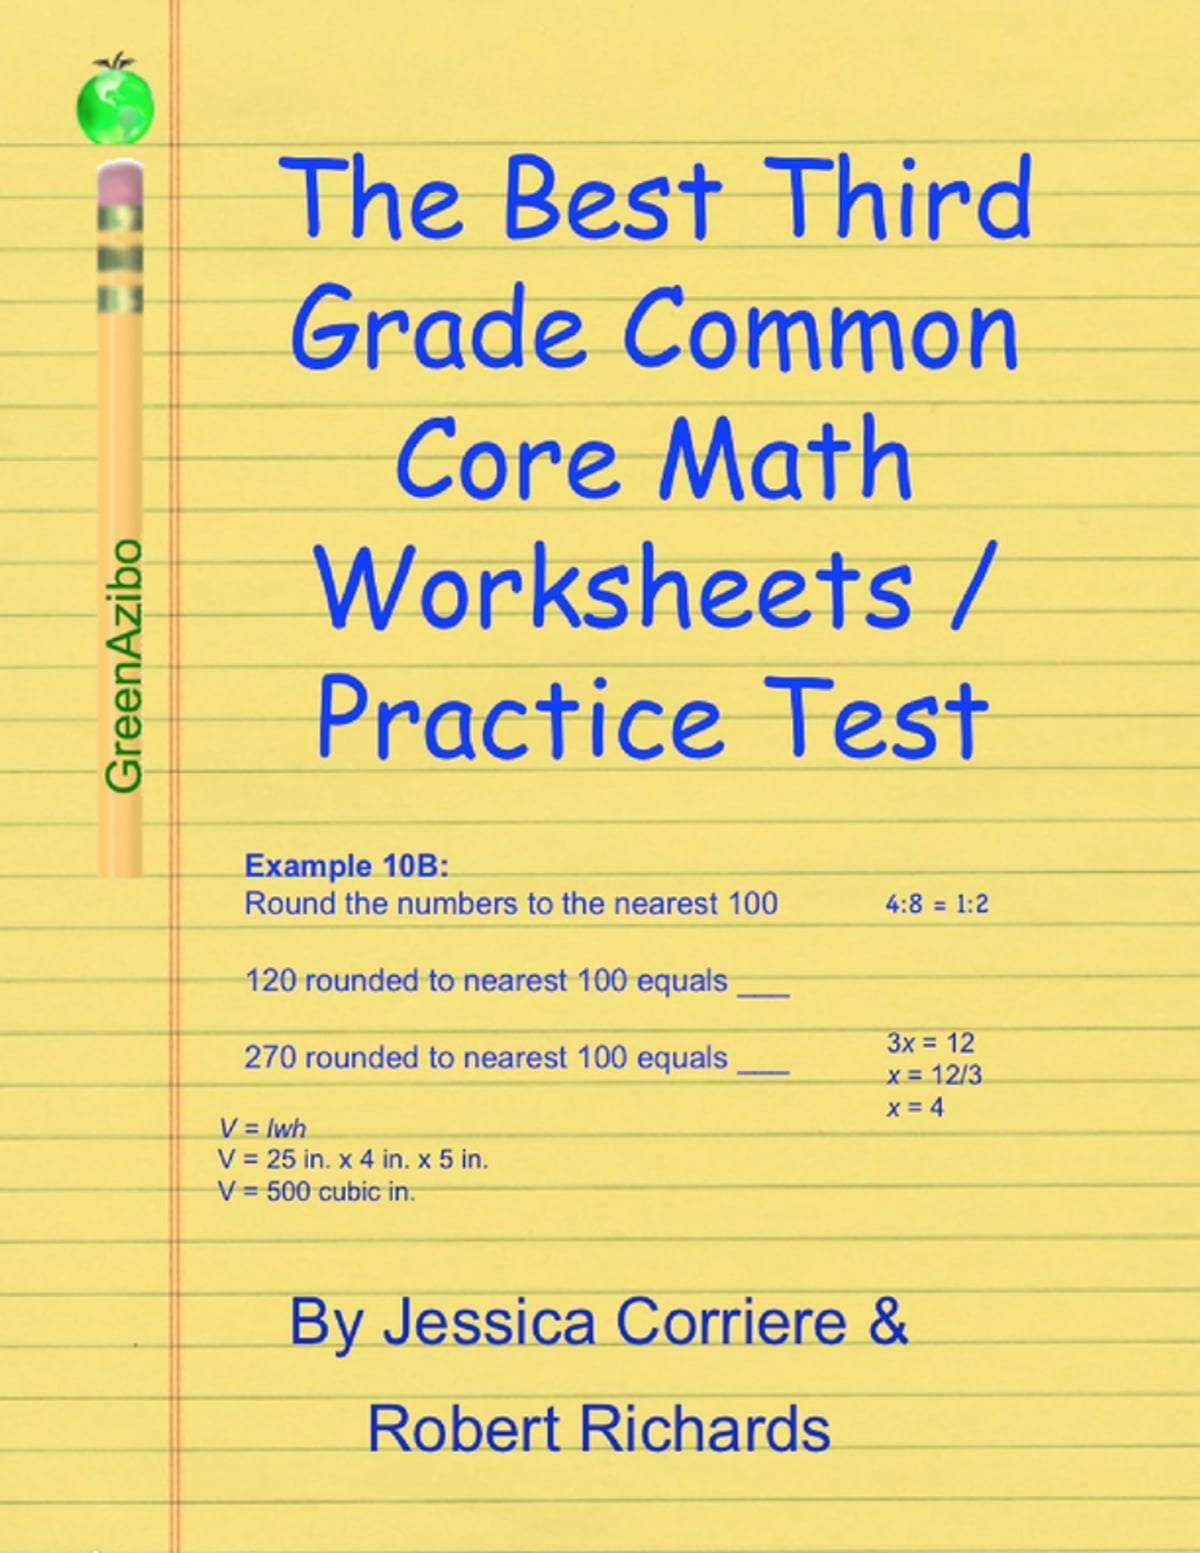 - The Best Third Grade Common Core Math Worksheets / Practice Tests